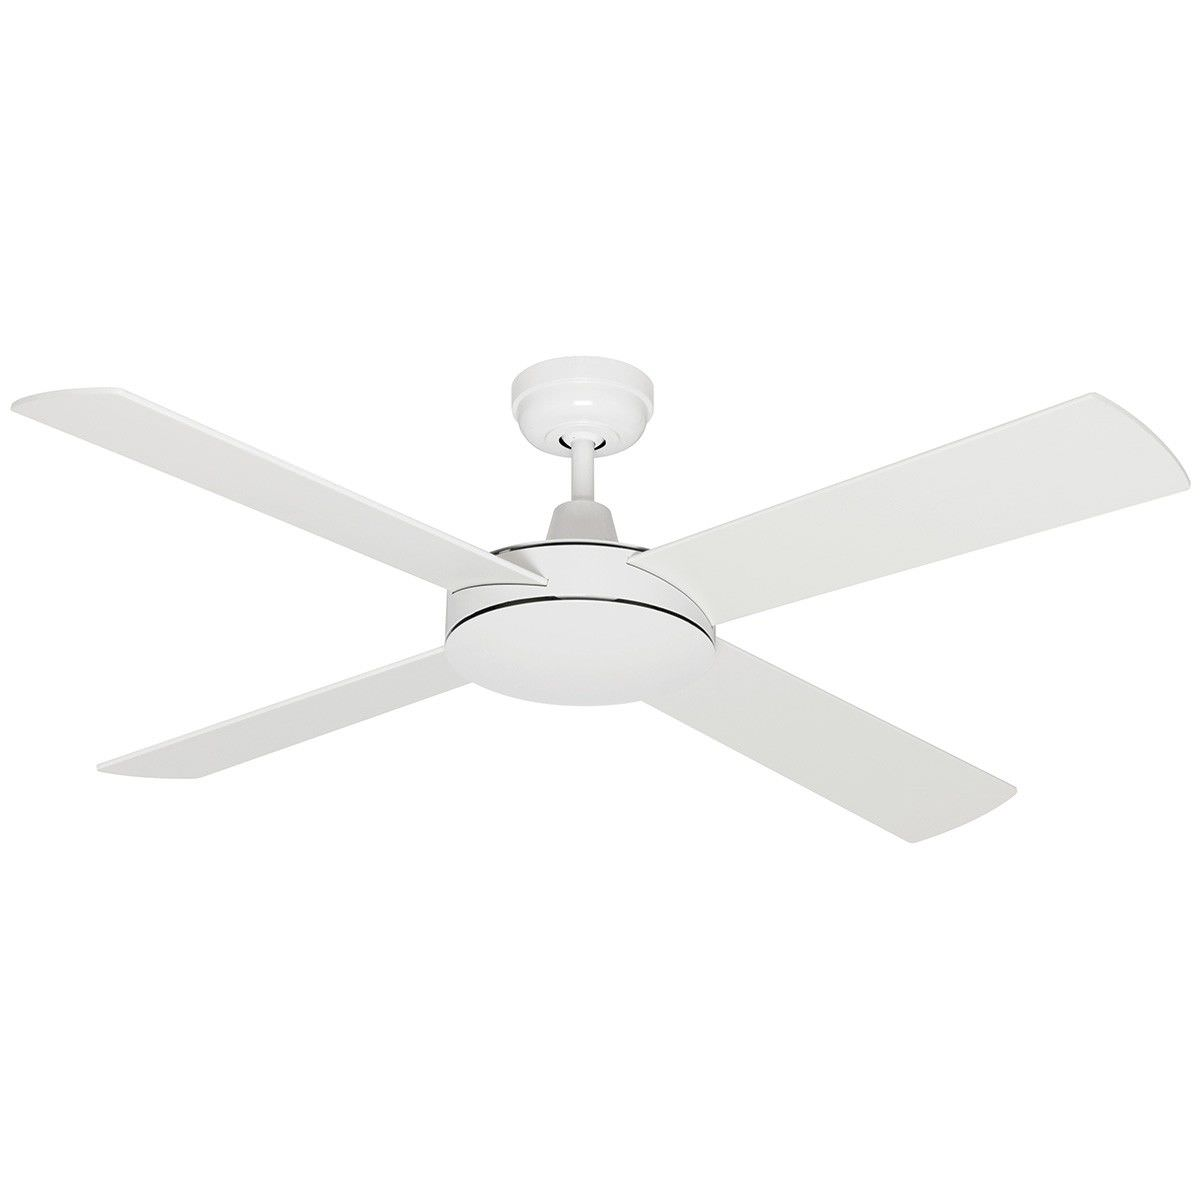 Caprice timber ceiling fan 120cm48 white caprice timber ceiling fan 120cm48 aloadofball Choice Image